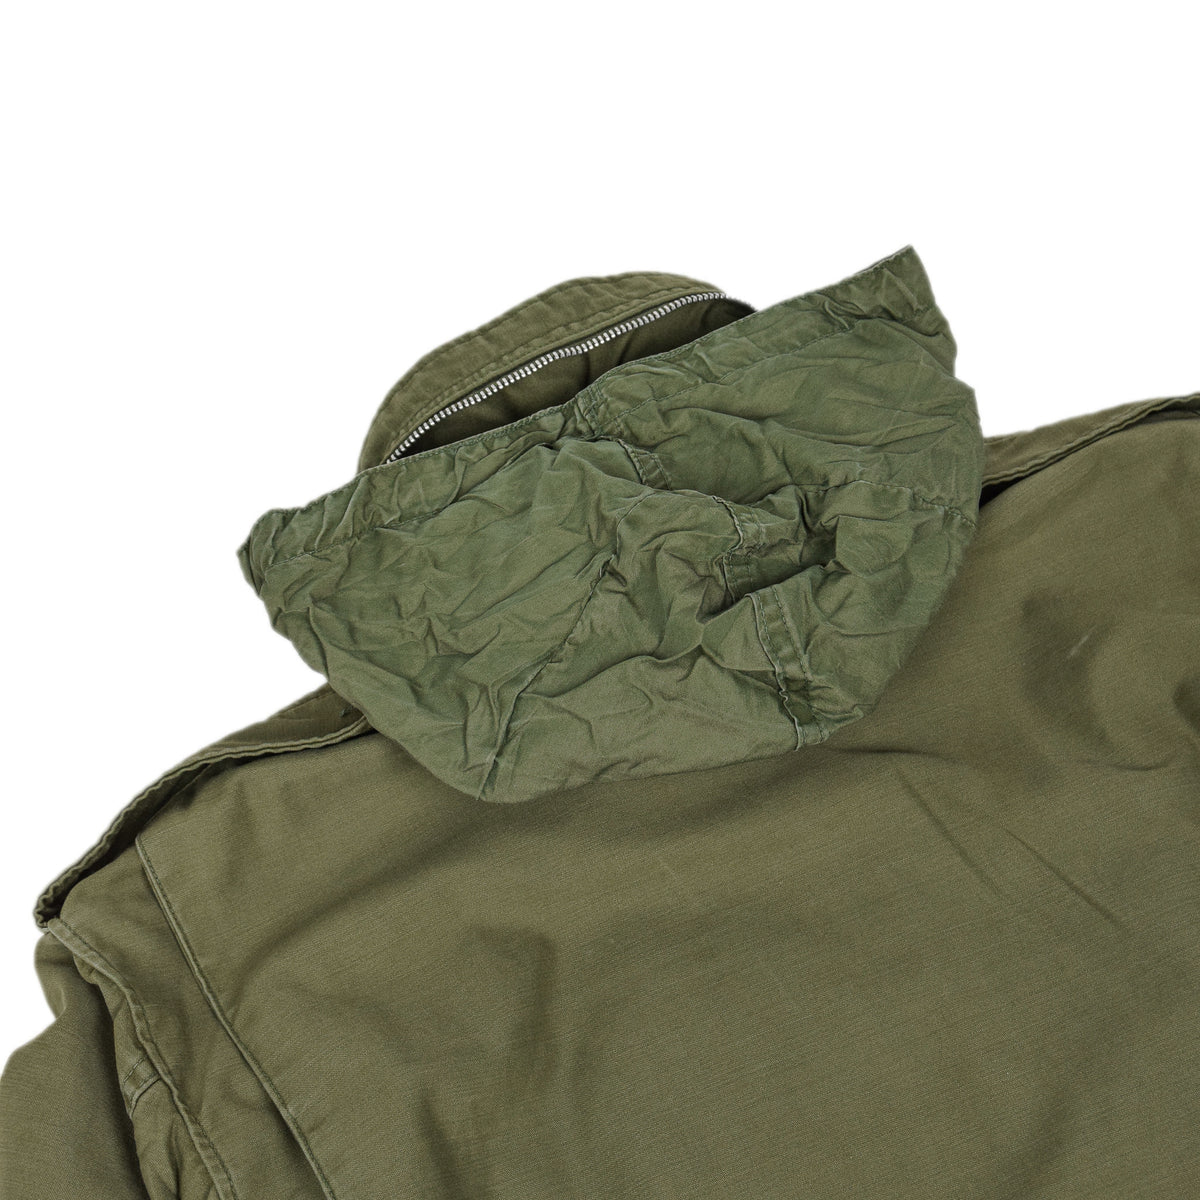 Vintage 60s Vietnam M-65 Field Cotton Sateen 0G-107 Green US Army Coat M Reg hood